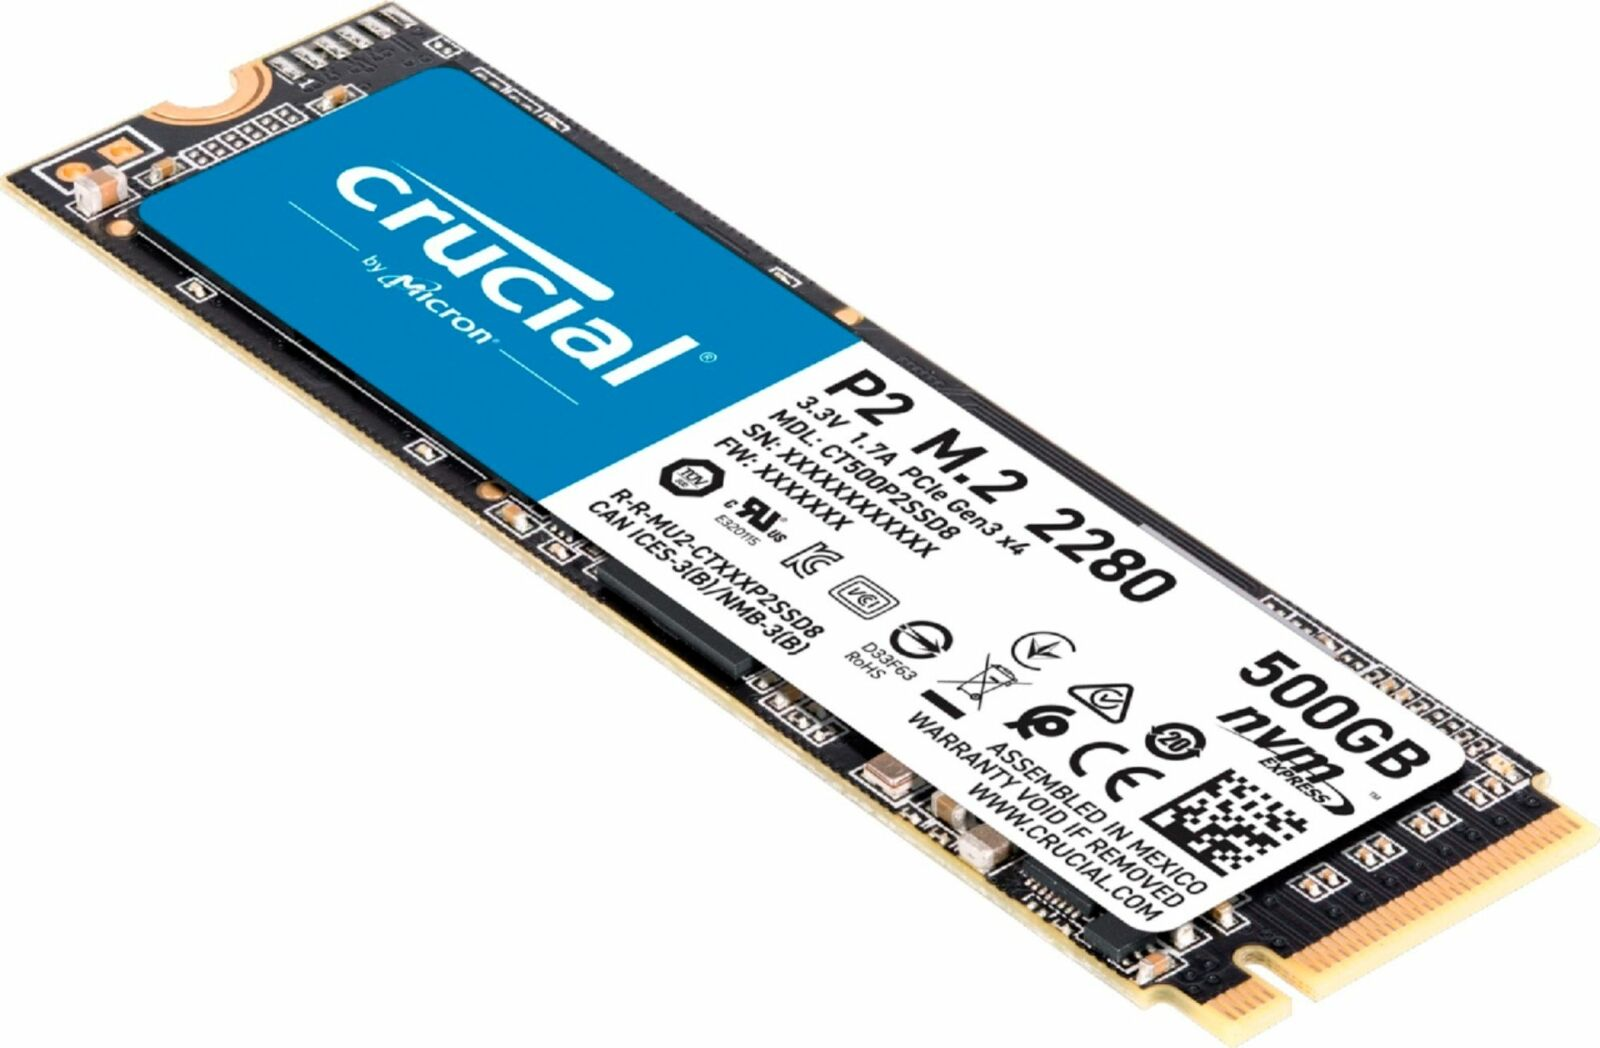 Crucial - P2 500GB 3D NAND NVMe PCIe M.2 Solid State Drive. Buy it now for 59.99